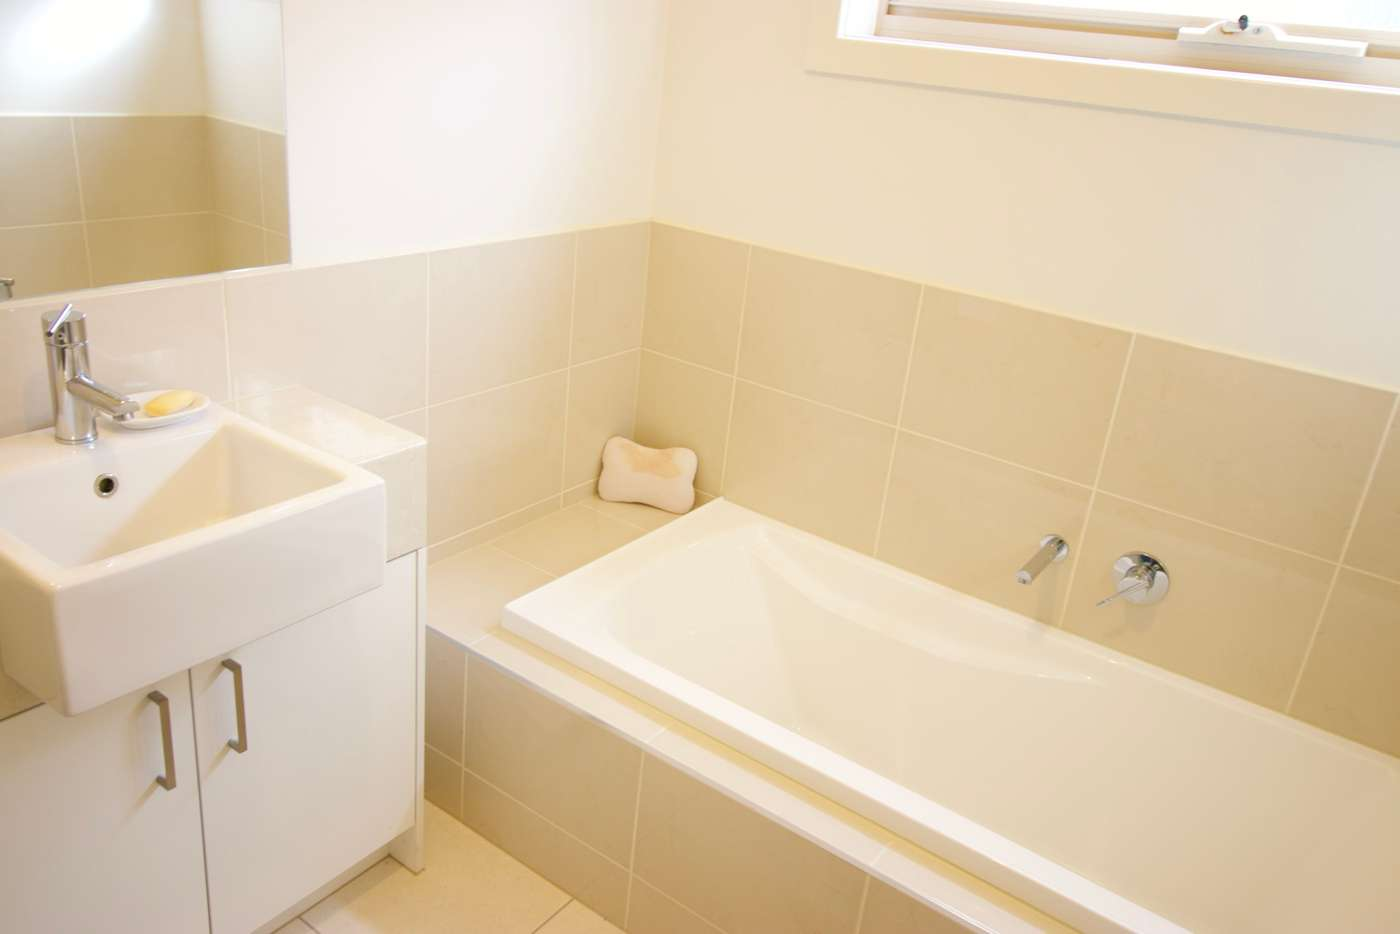 Sixth view of Homely townhouse listing, 3 Whatton Place, Yea VIC 3717